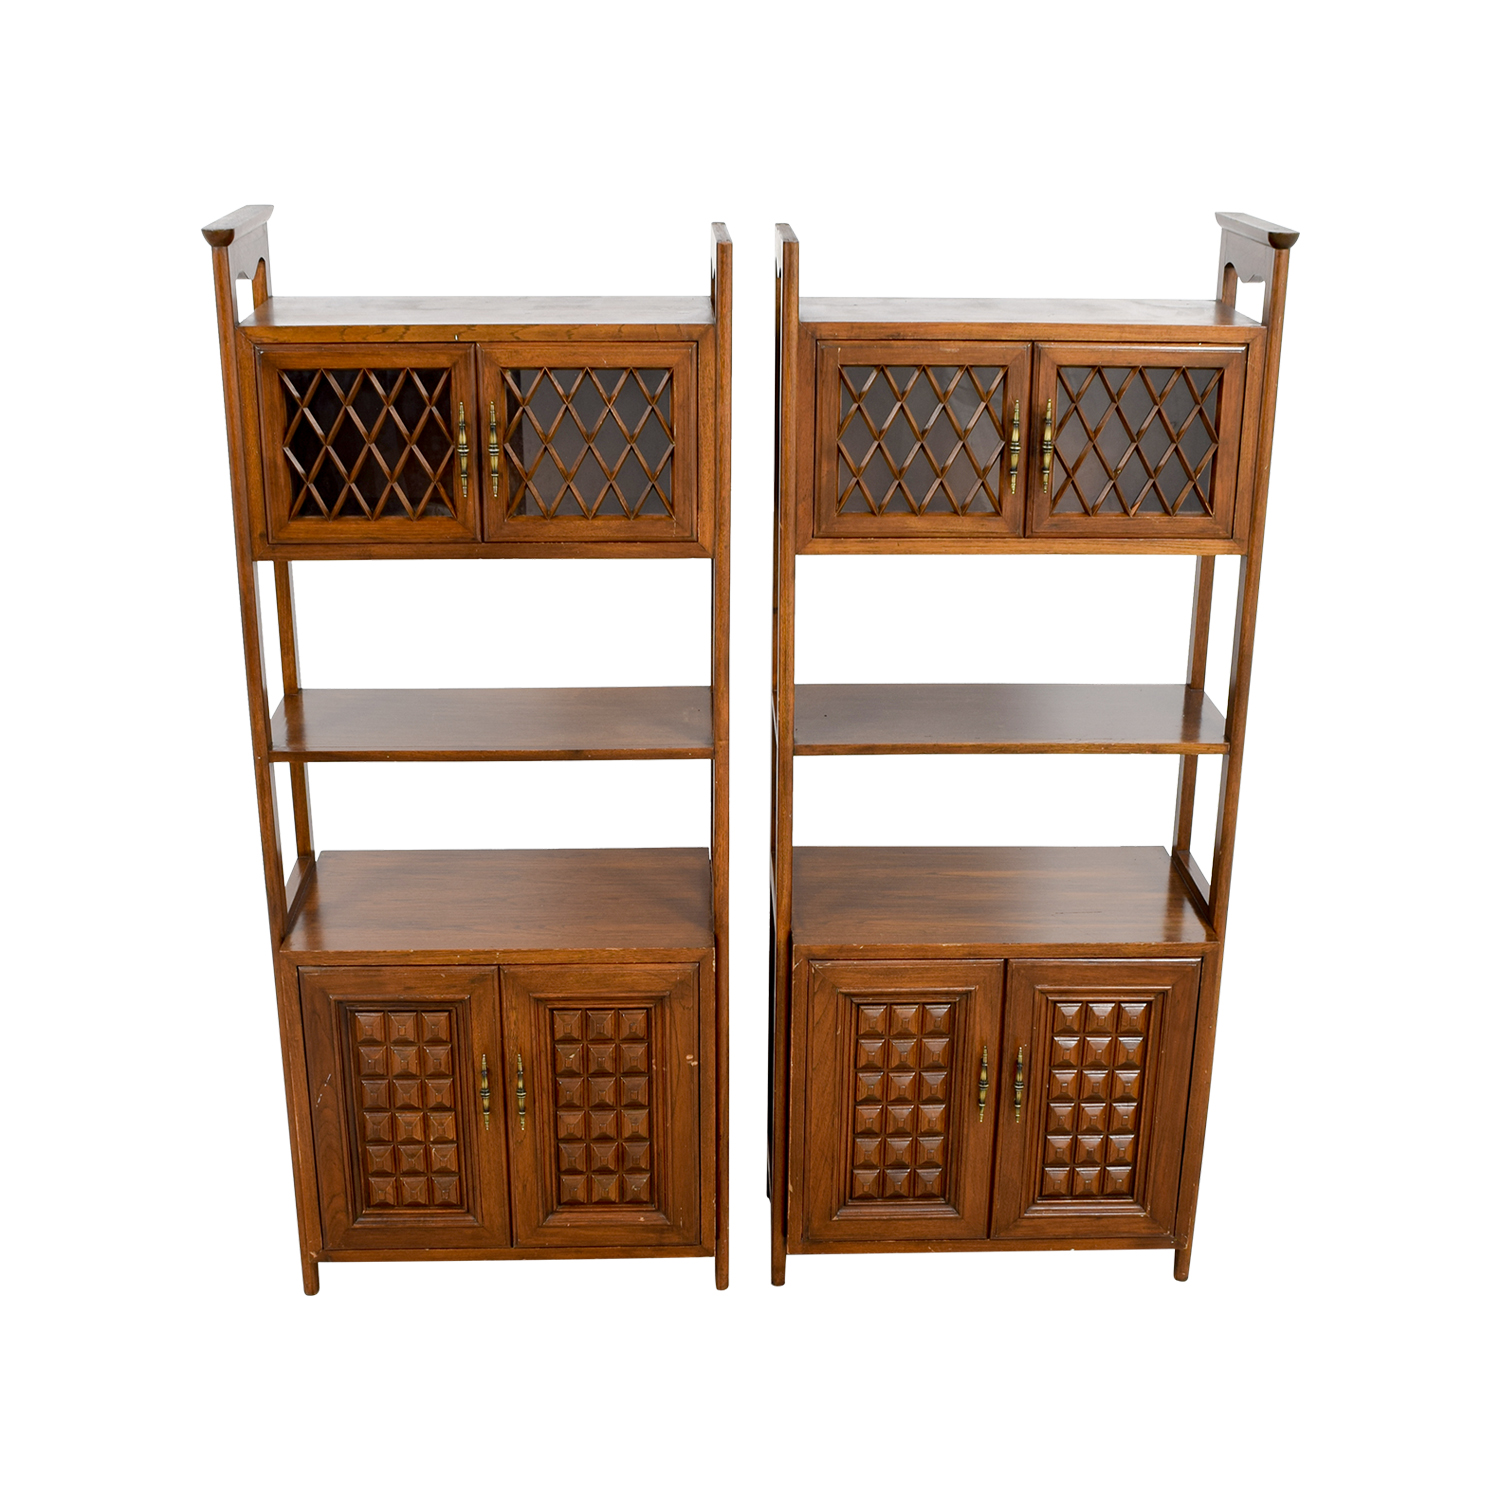 buy Mid-Century Wood Storage Cabinets